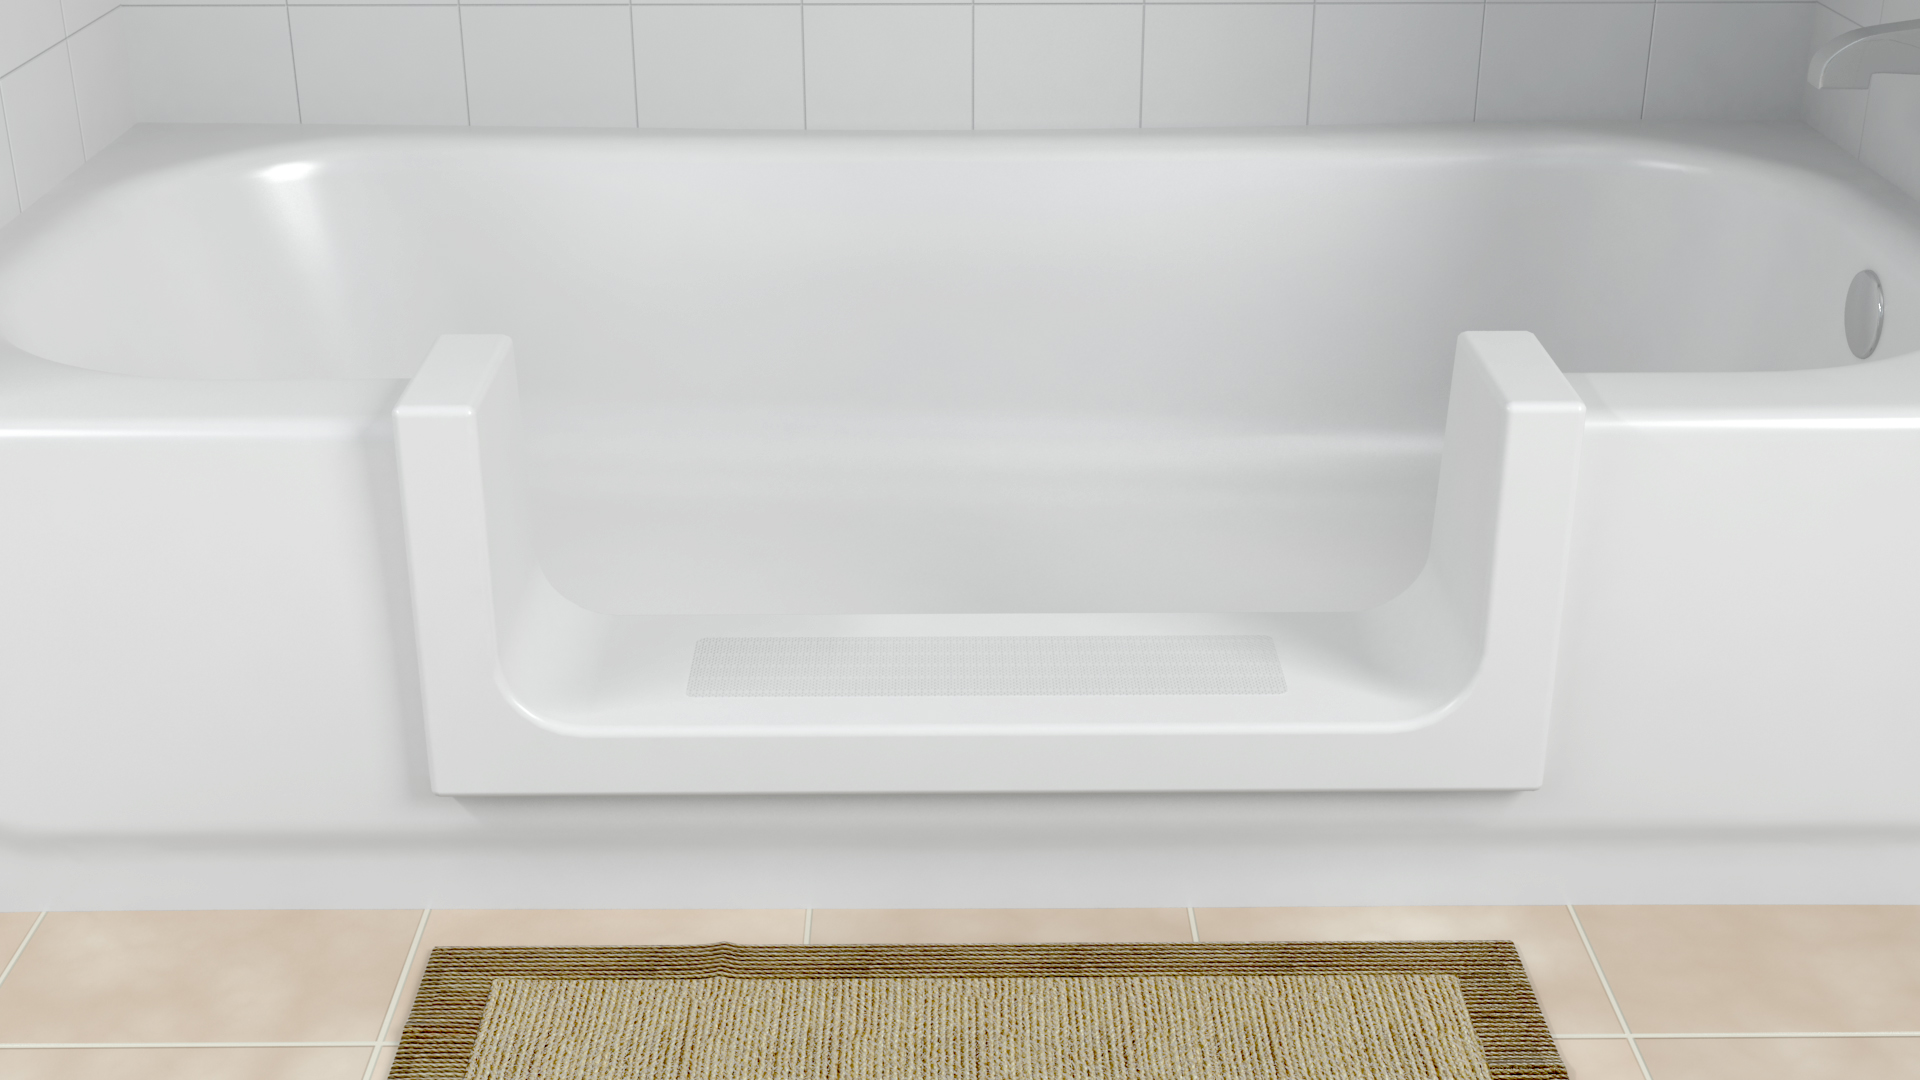 Clean Cut tub modification